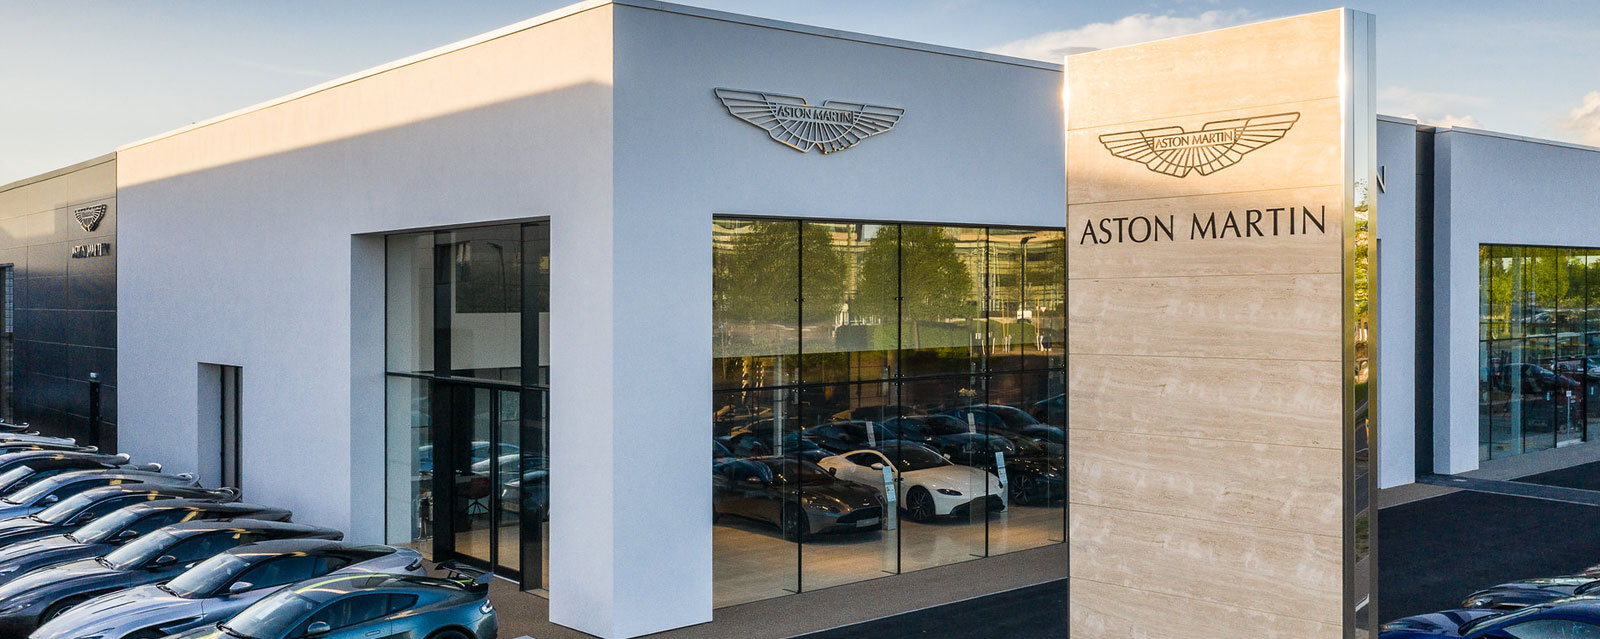 Introducing our new state-of-the-art Grange Aston Martin Hatfield dealership